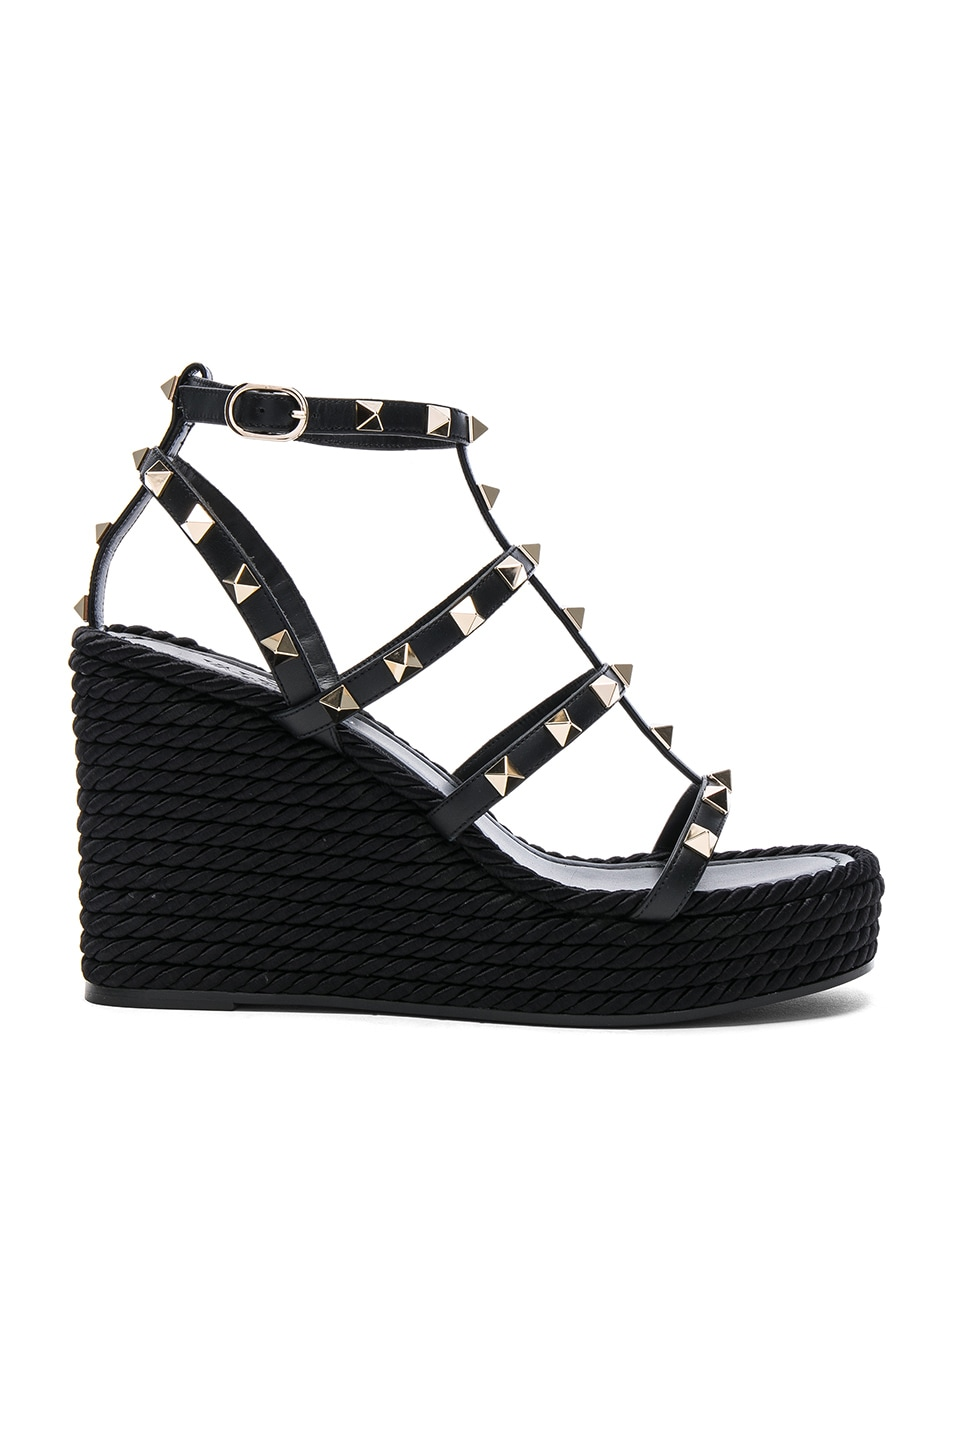 7596a191db3 Valentino Torchon Rockstud Leather Wedge Sandals In Black